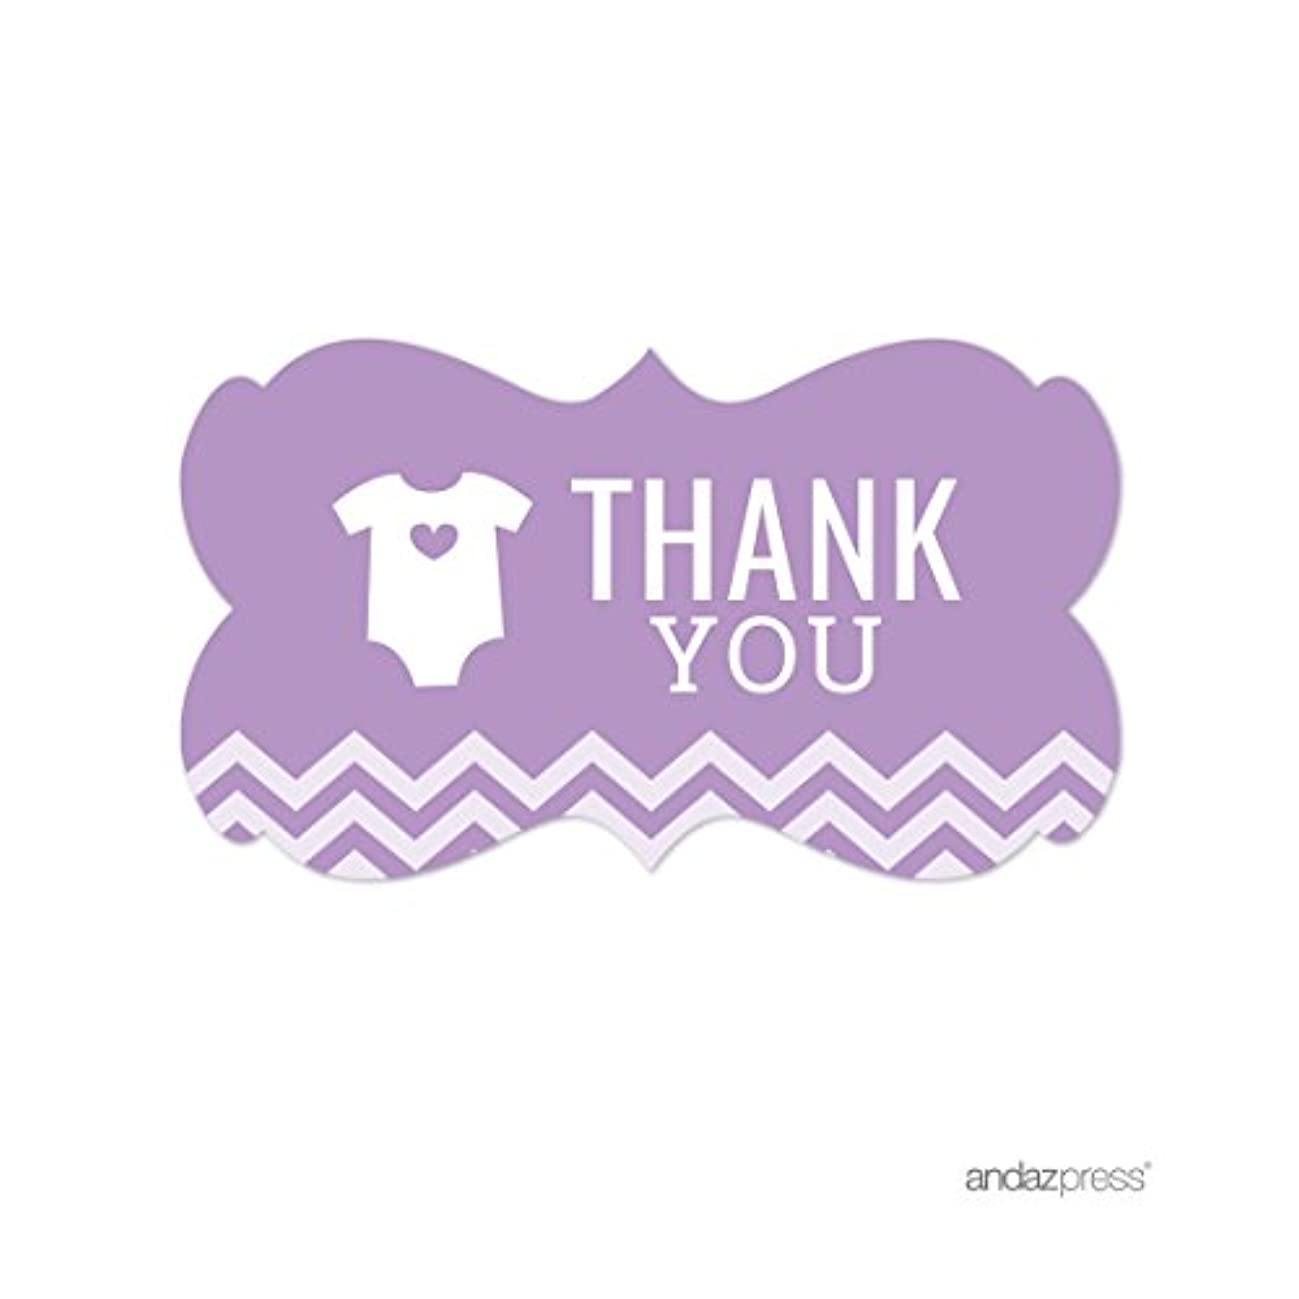 Andaz Press Lavender Chevron Girl Baby Shower Collection, Fancy Frame Label Stickers, Thank You, 36-Pack